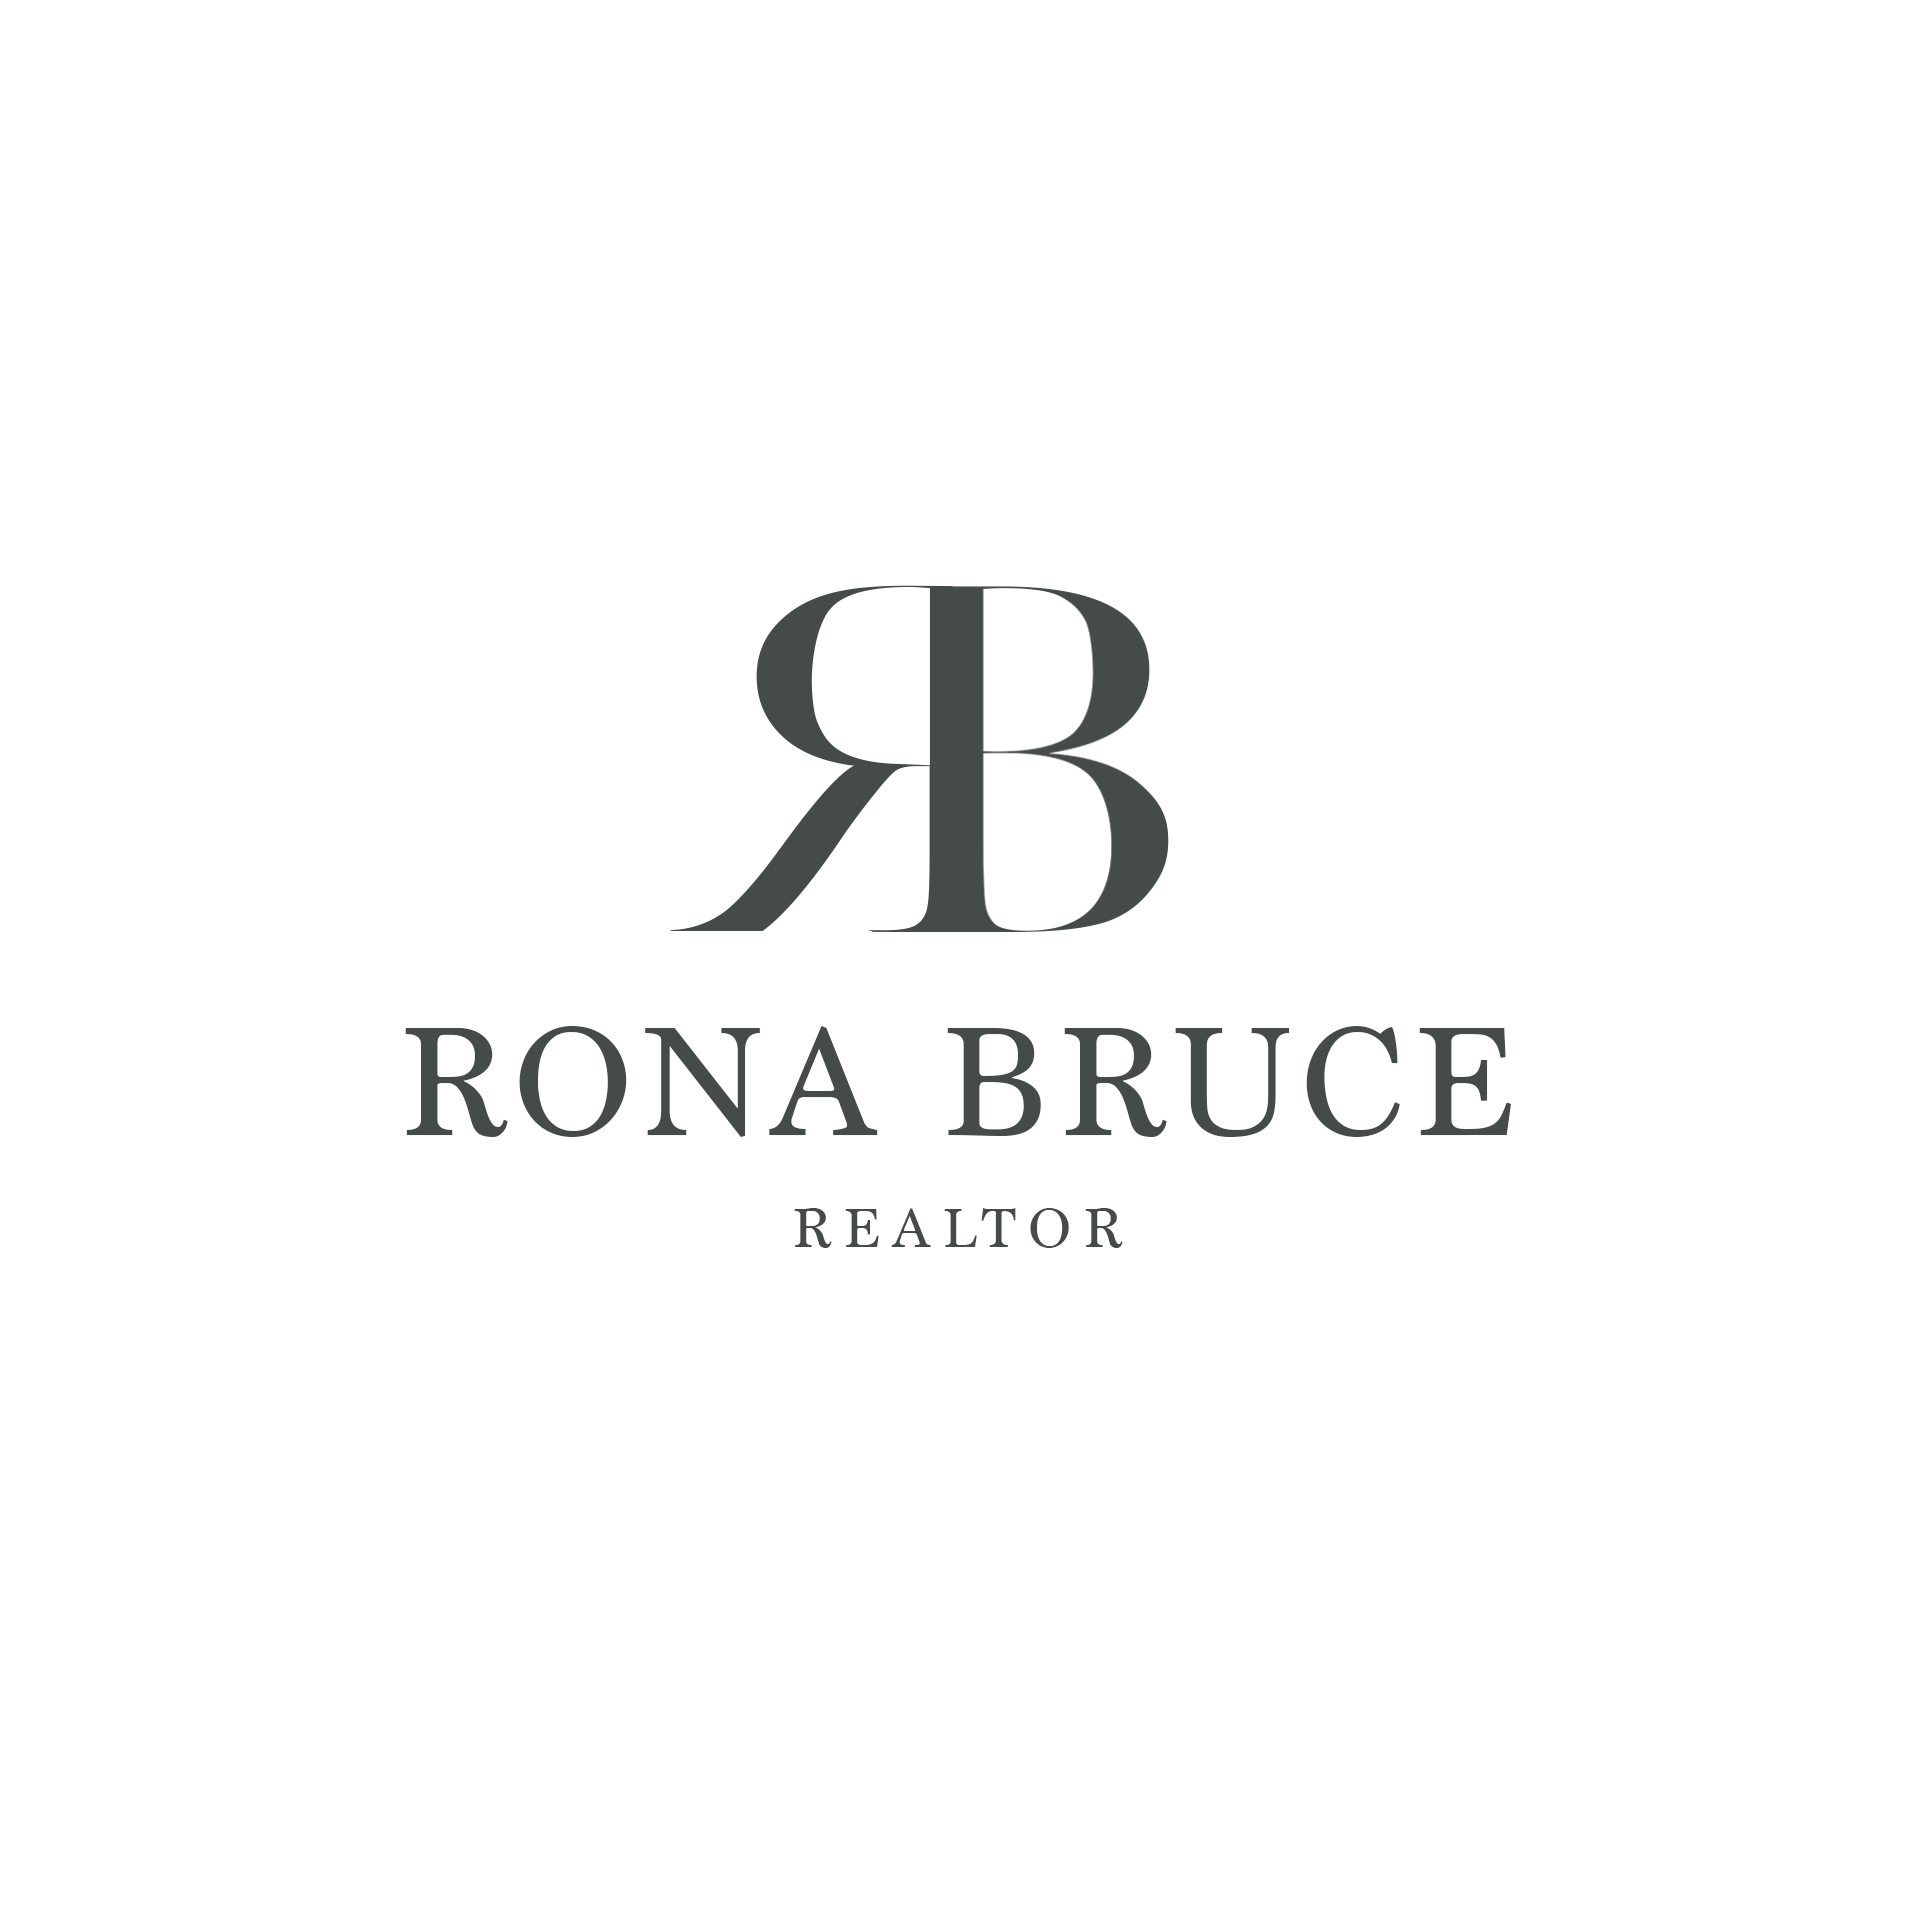 RB Realtor Logo